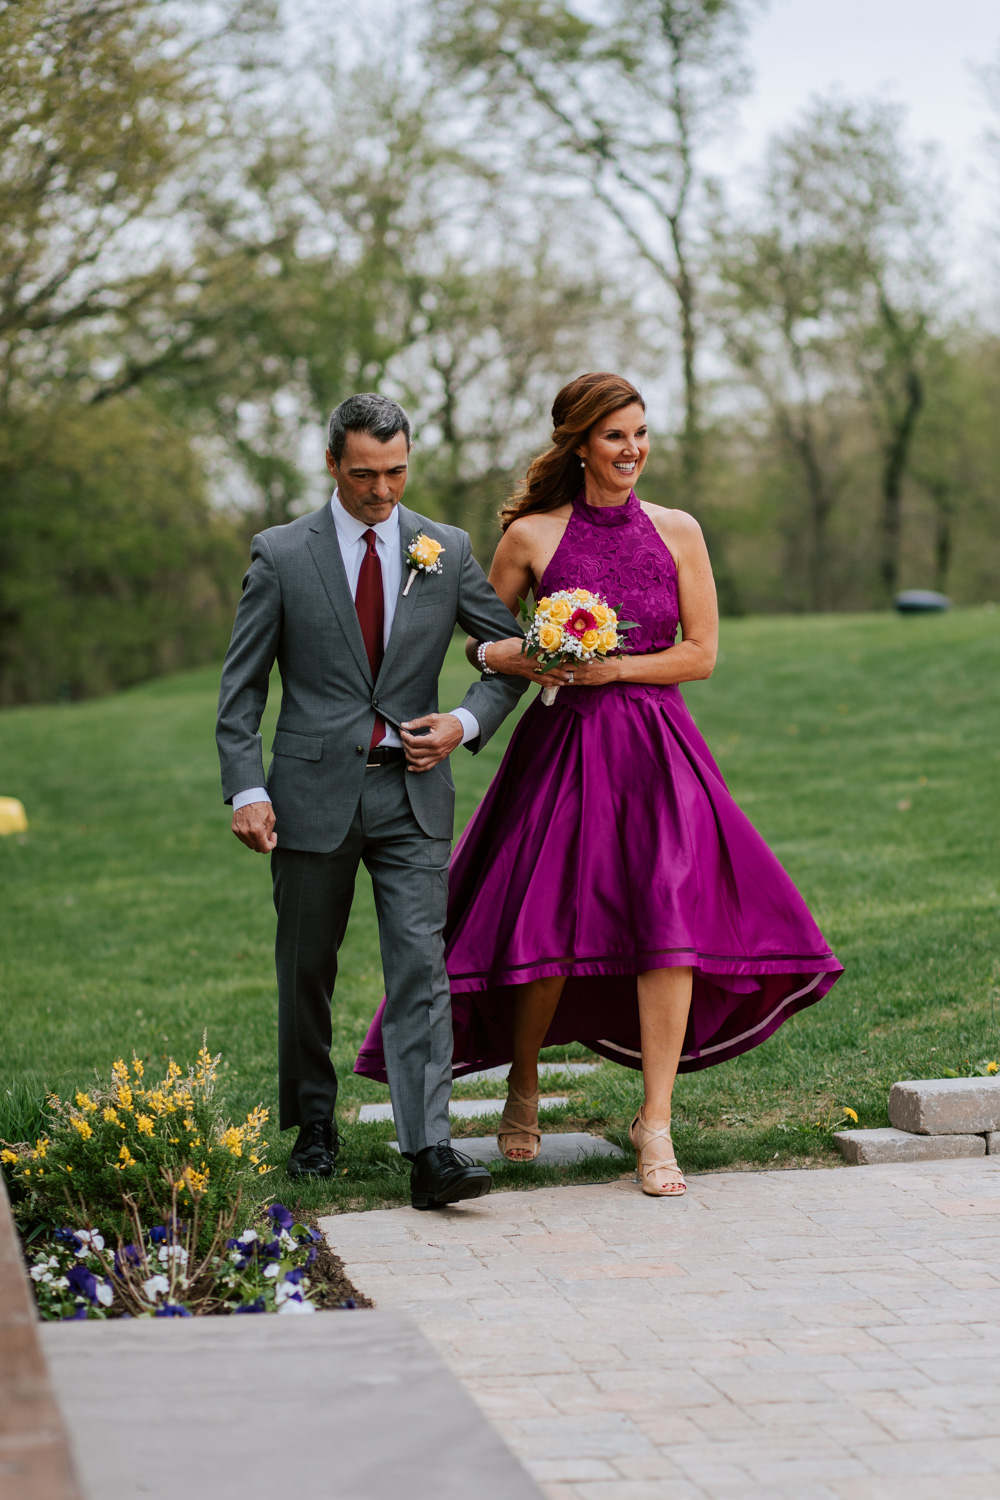 Shutter Up Studios   Wedding photographer in Pittsburgh, Pennsylvania   Outdoor rustic elegant country chic ceremony